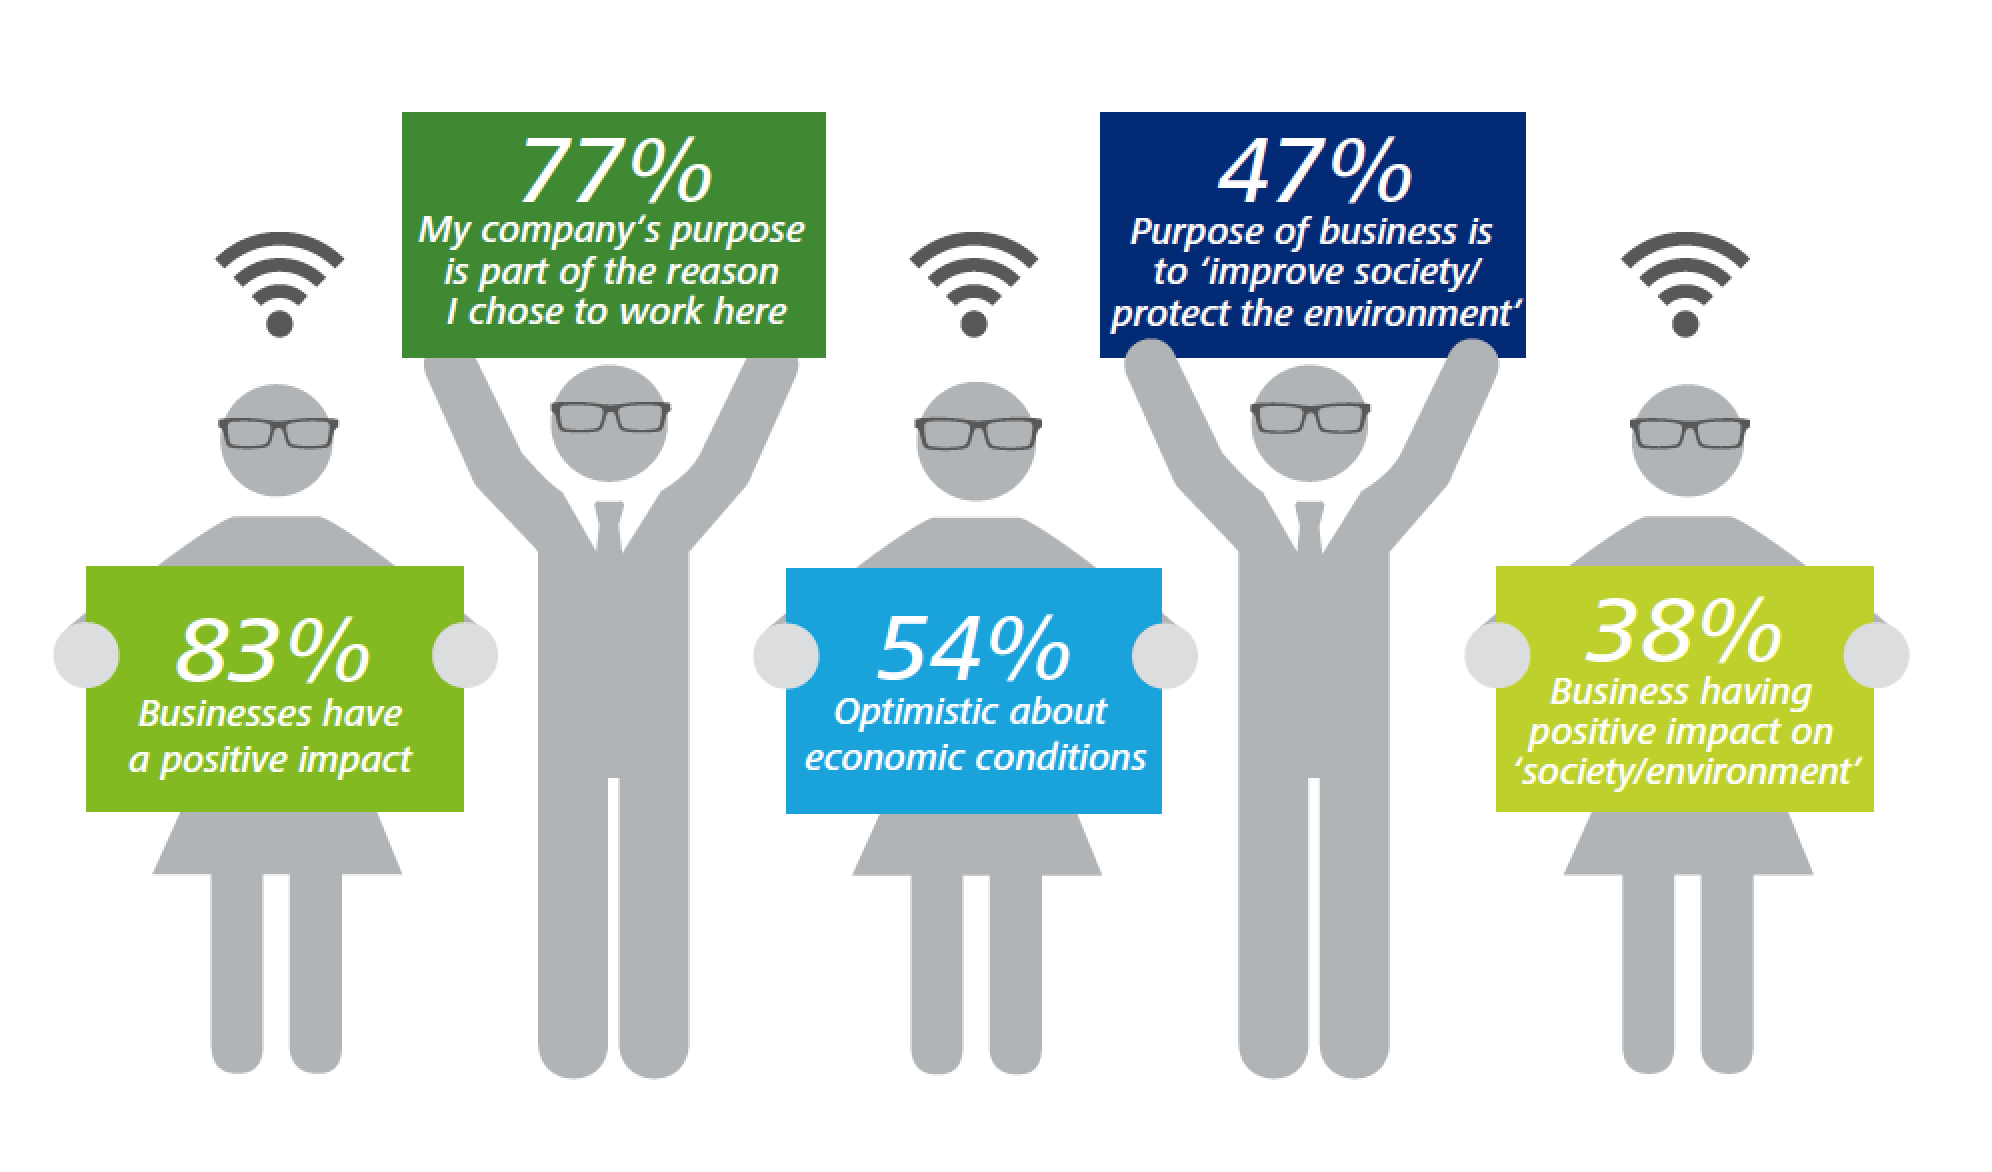 Source: The Deloitte Millennial Survey 2015